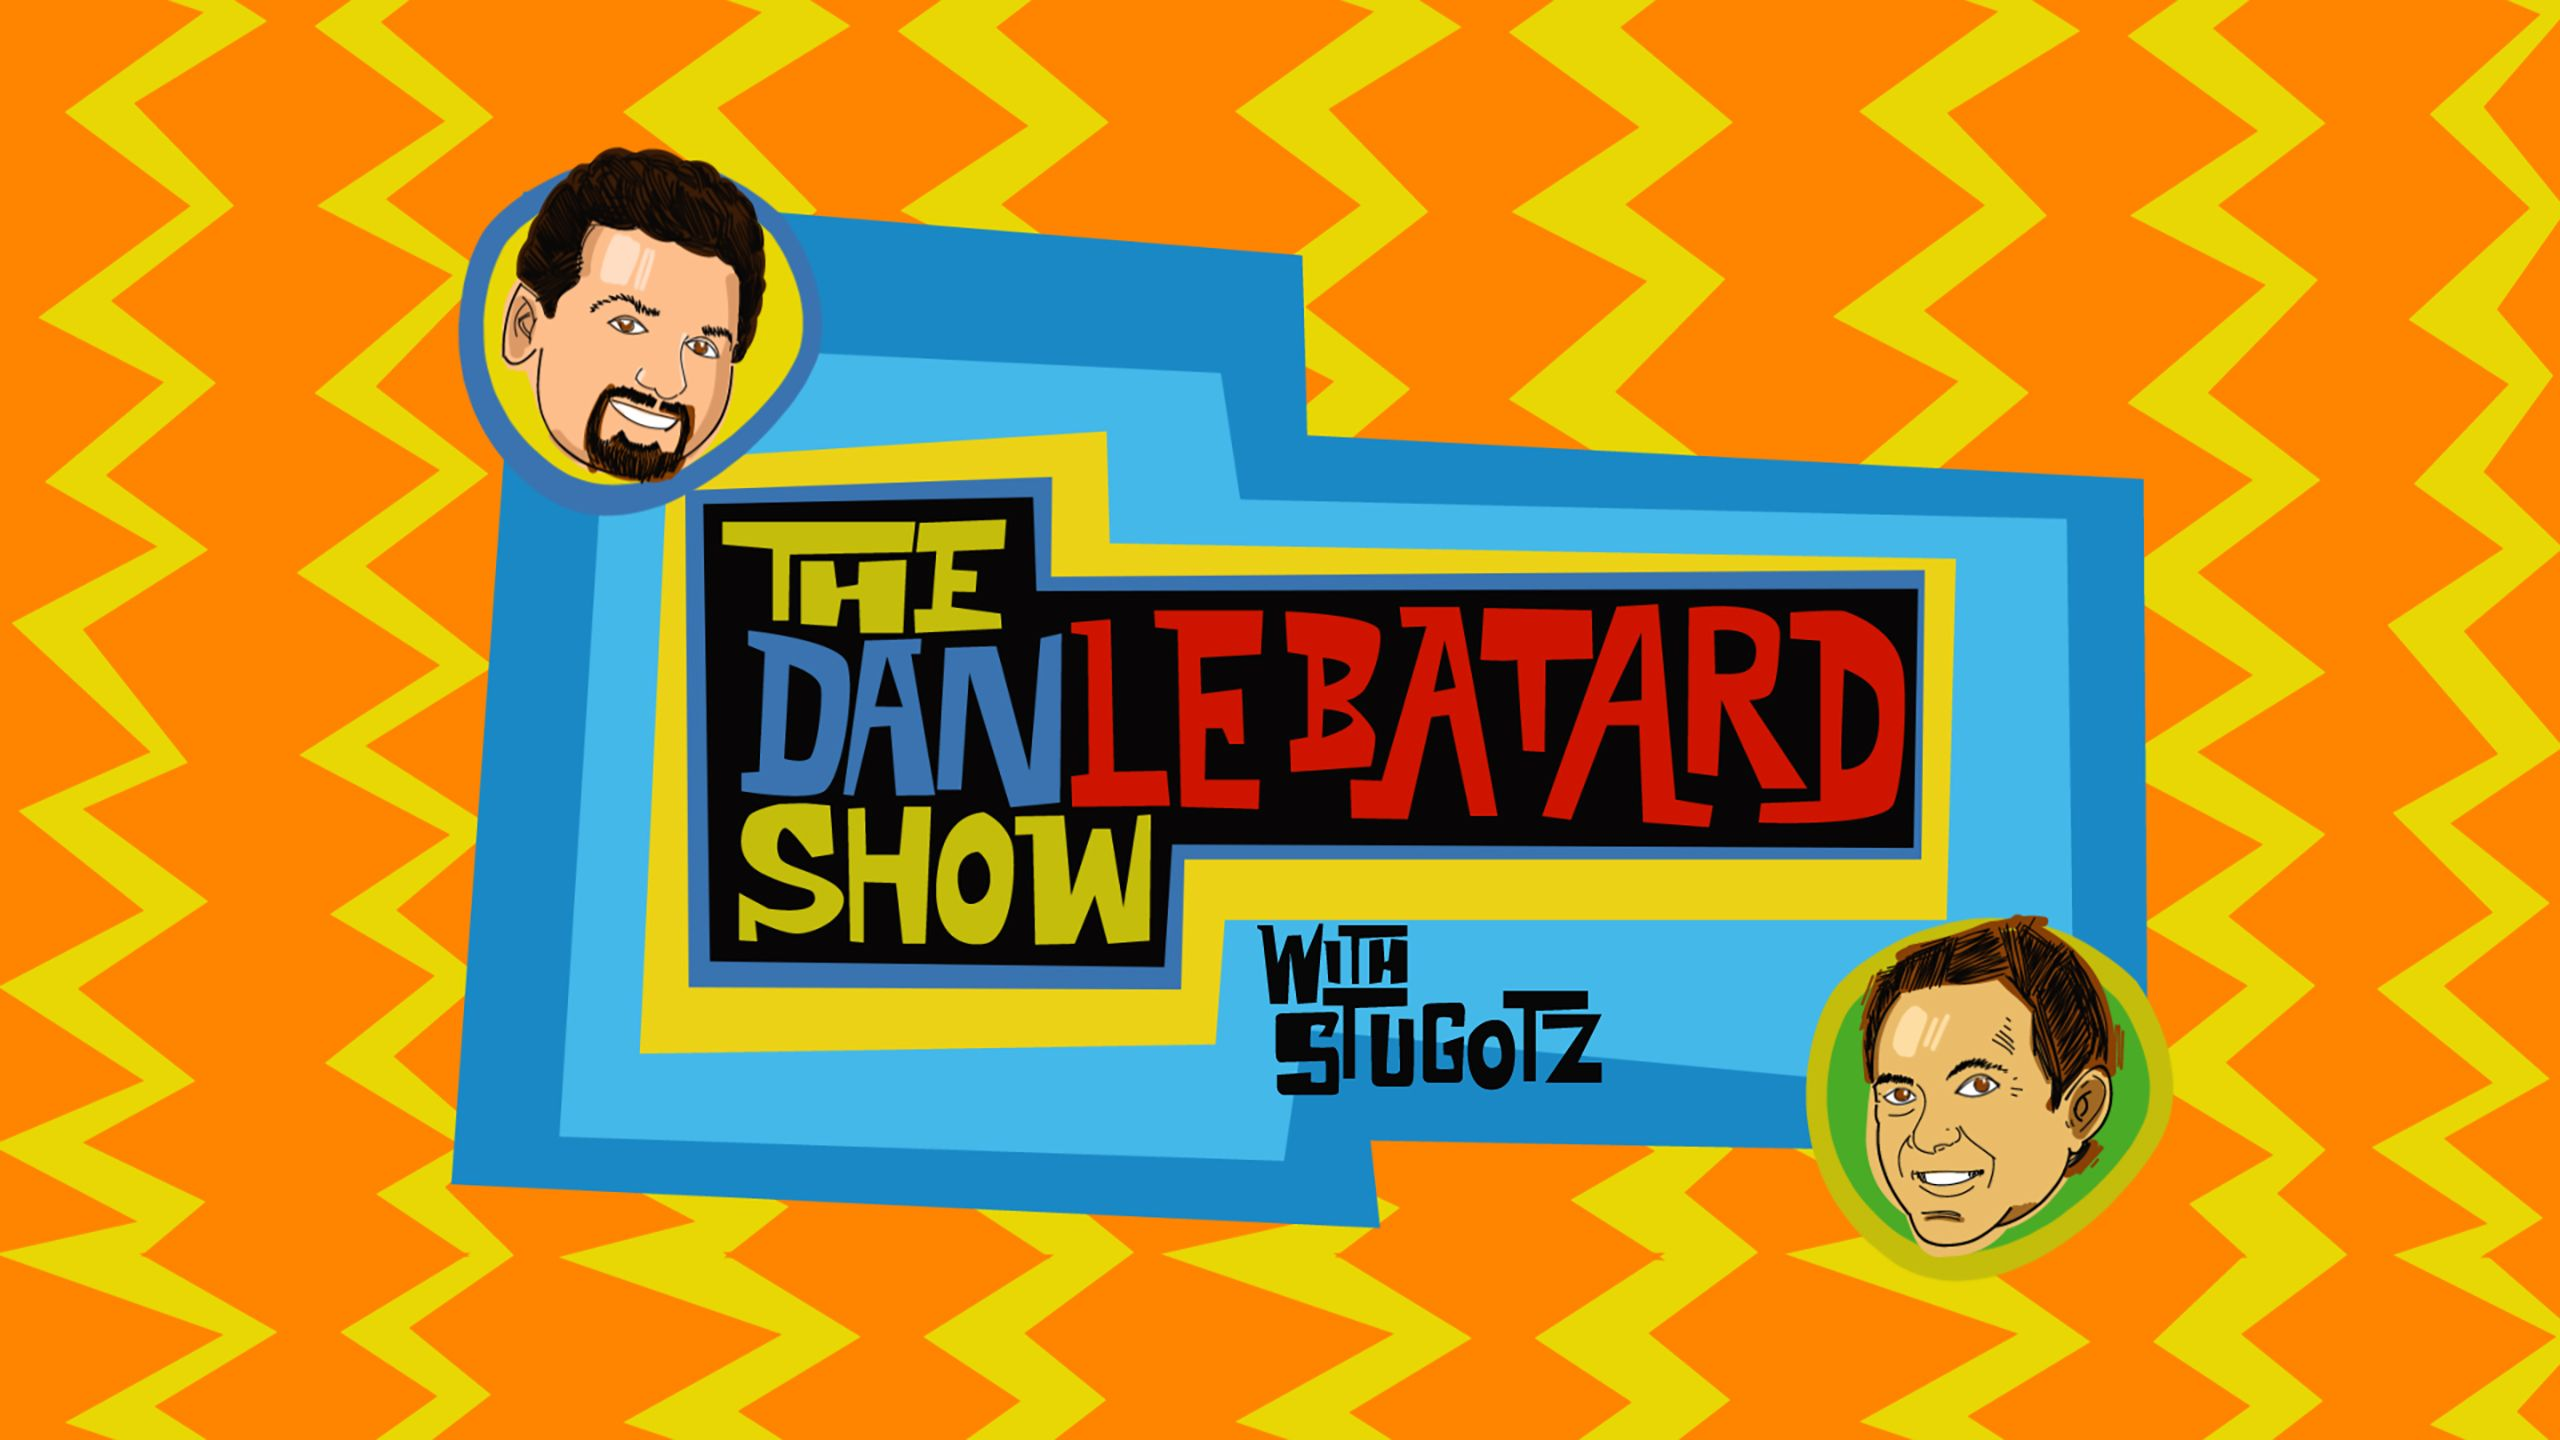 Mon, 6/25 - The Dan Le Batard Show with Stugotz Presented by Progressive